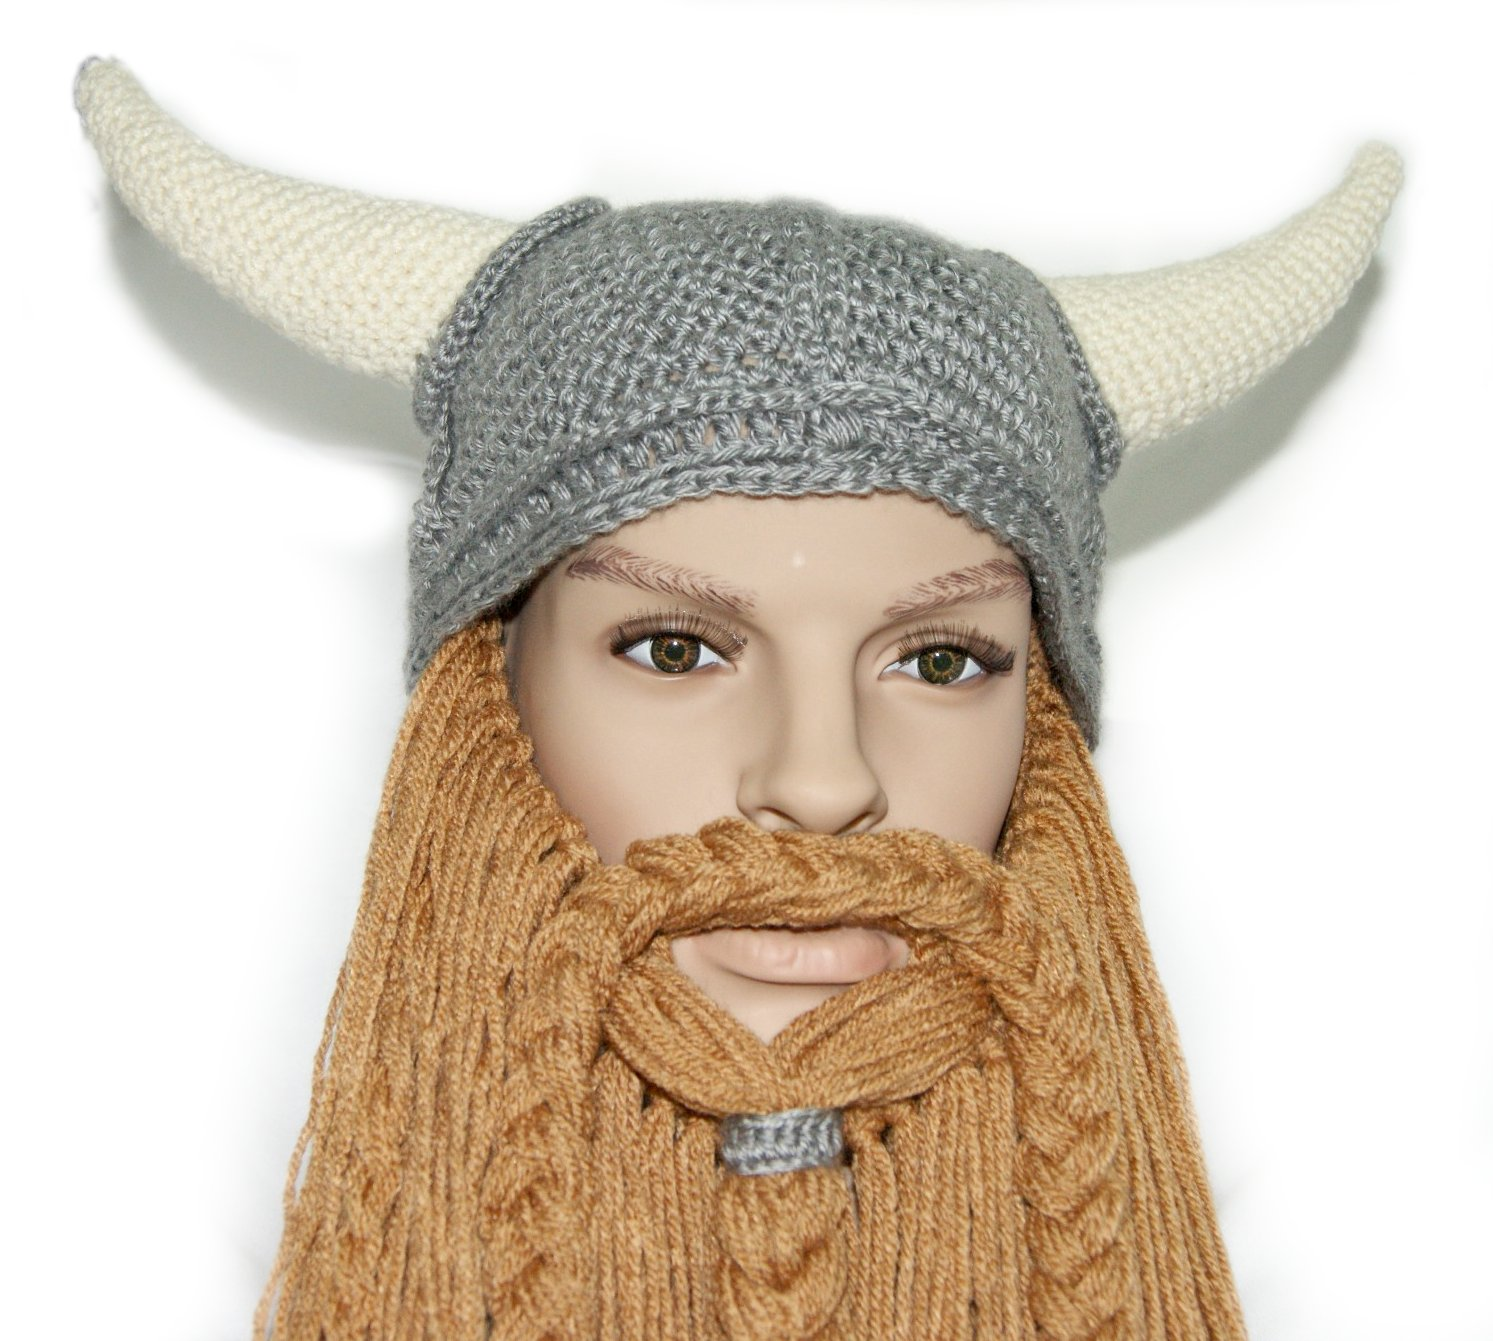 Mixin it up with DaPerfectMix: Bretts Viking Hat